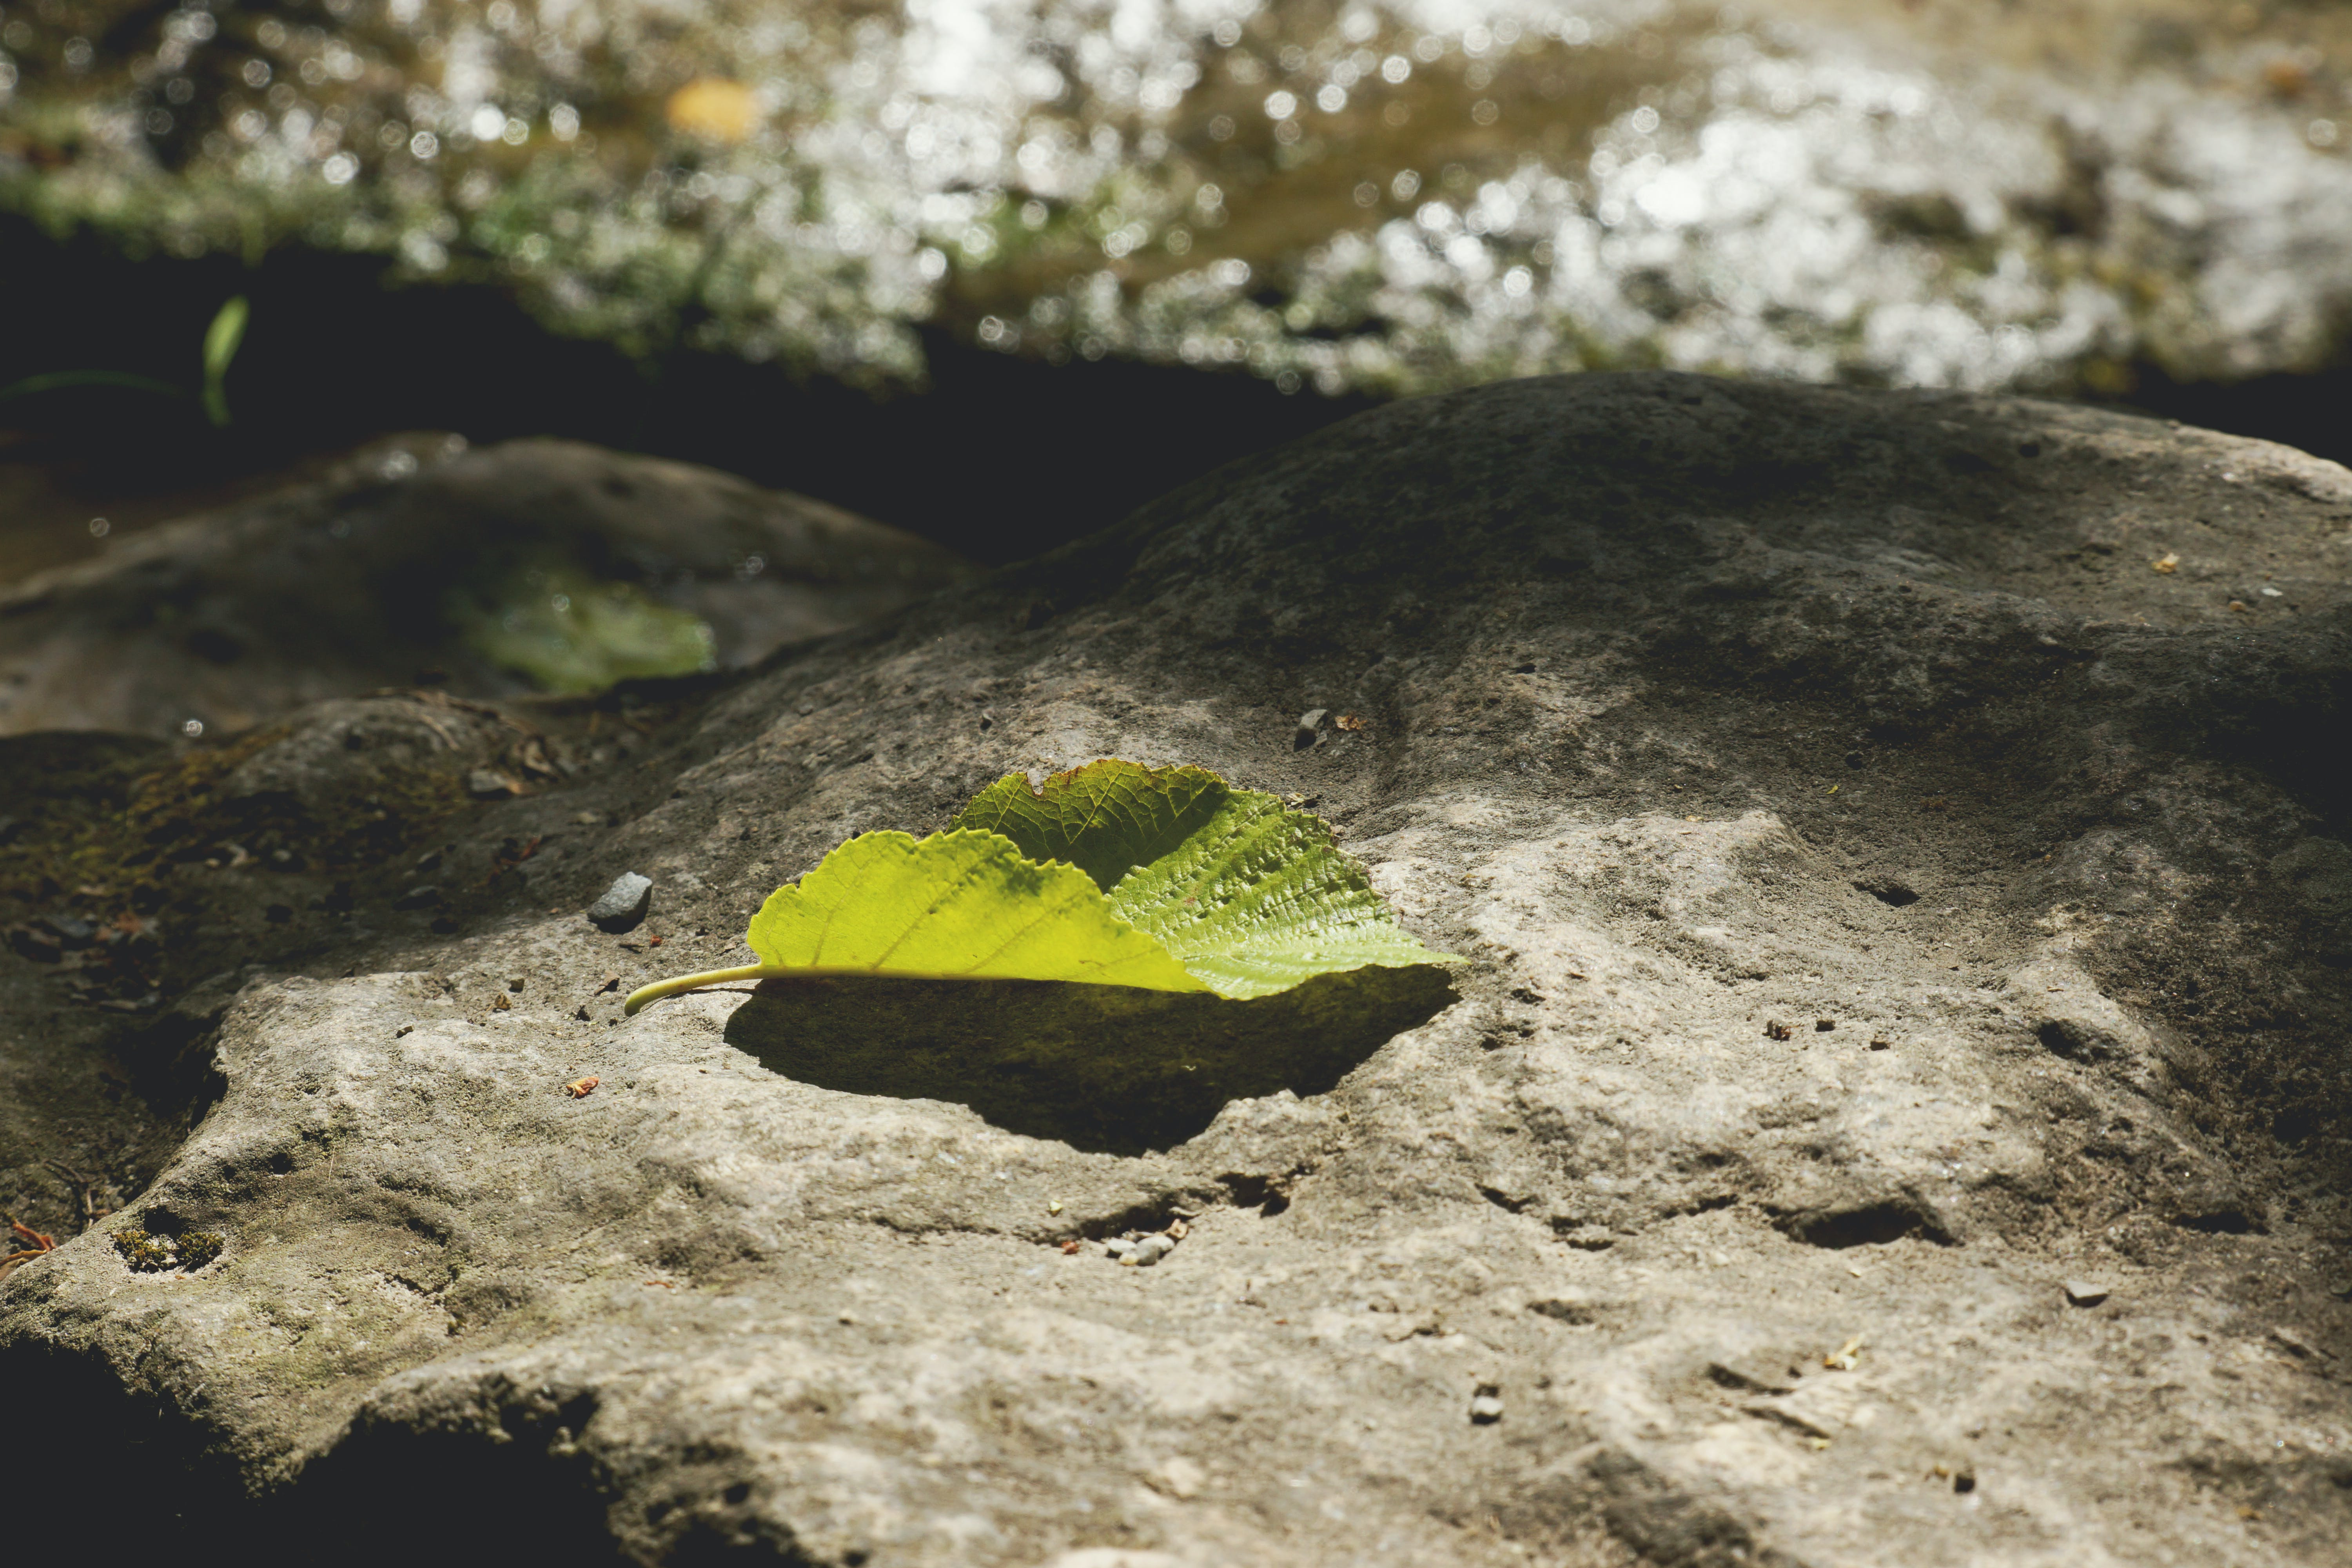 Free stock photo of leaf, light and shadow, nature, rock